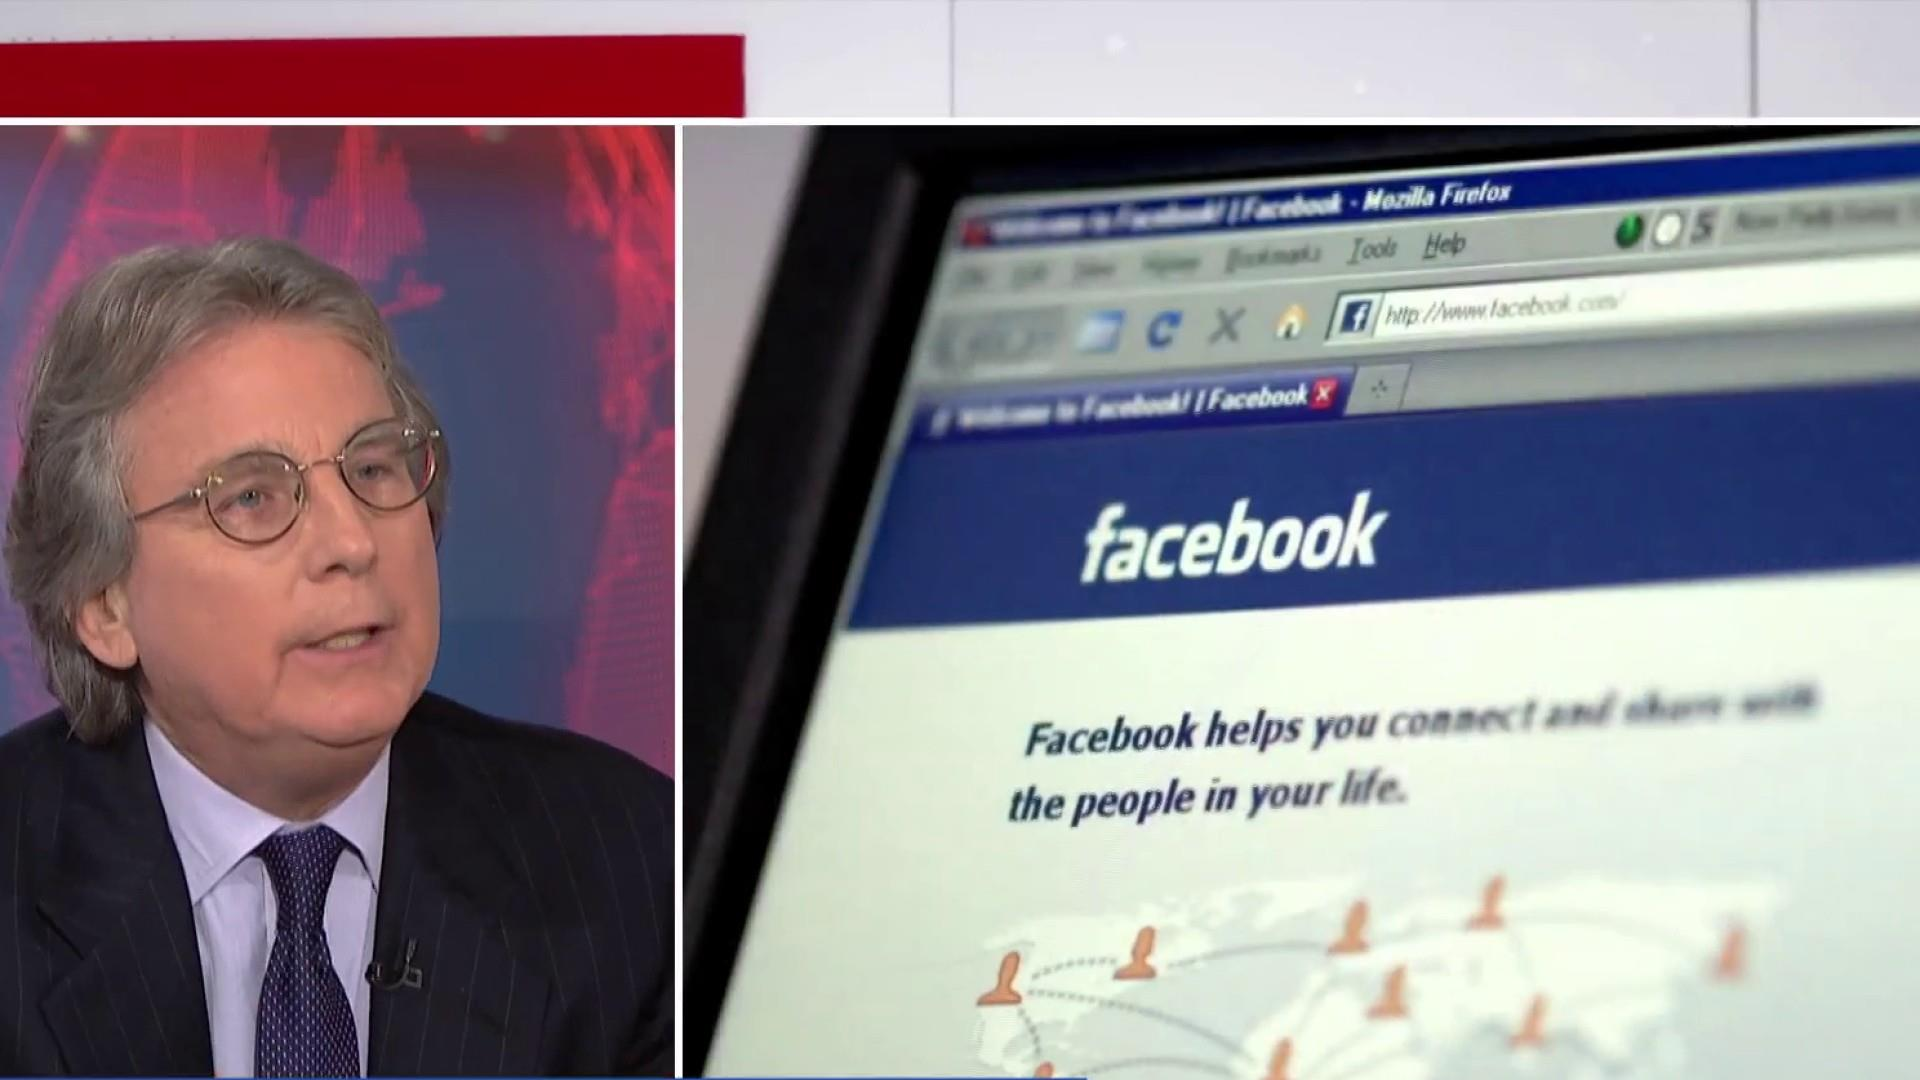 Facebook investor on settlement with FTC over privacy issues